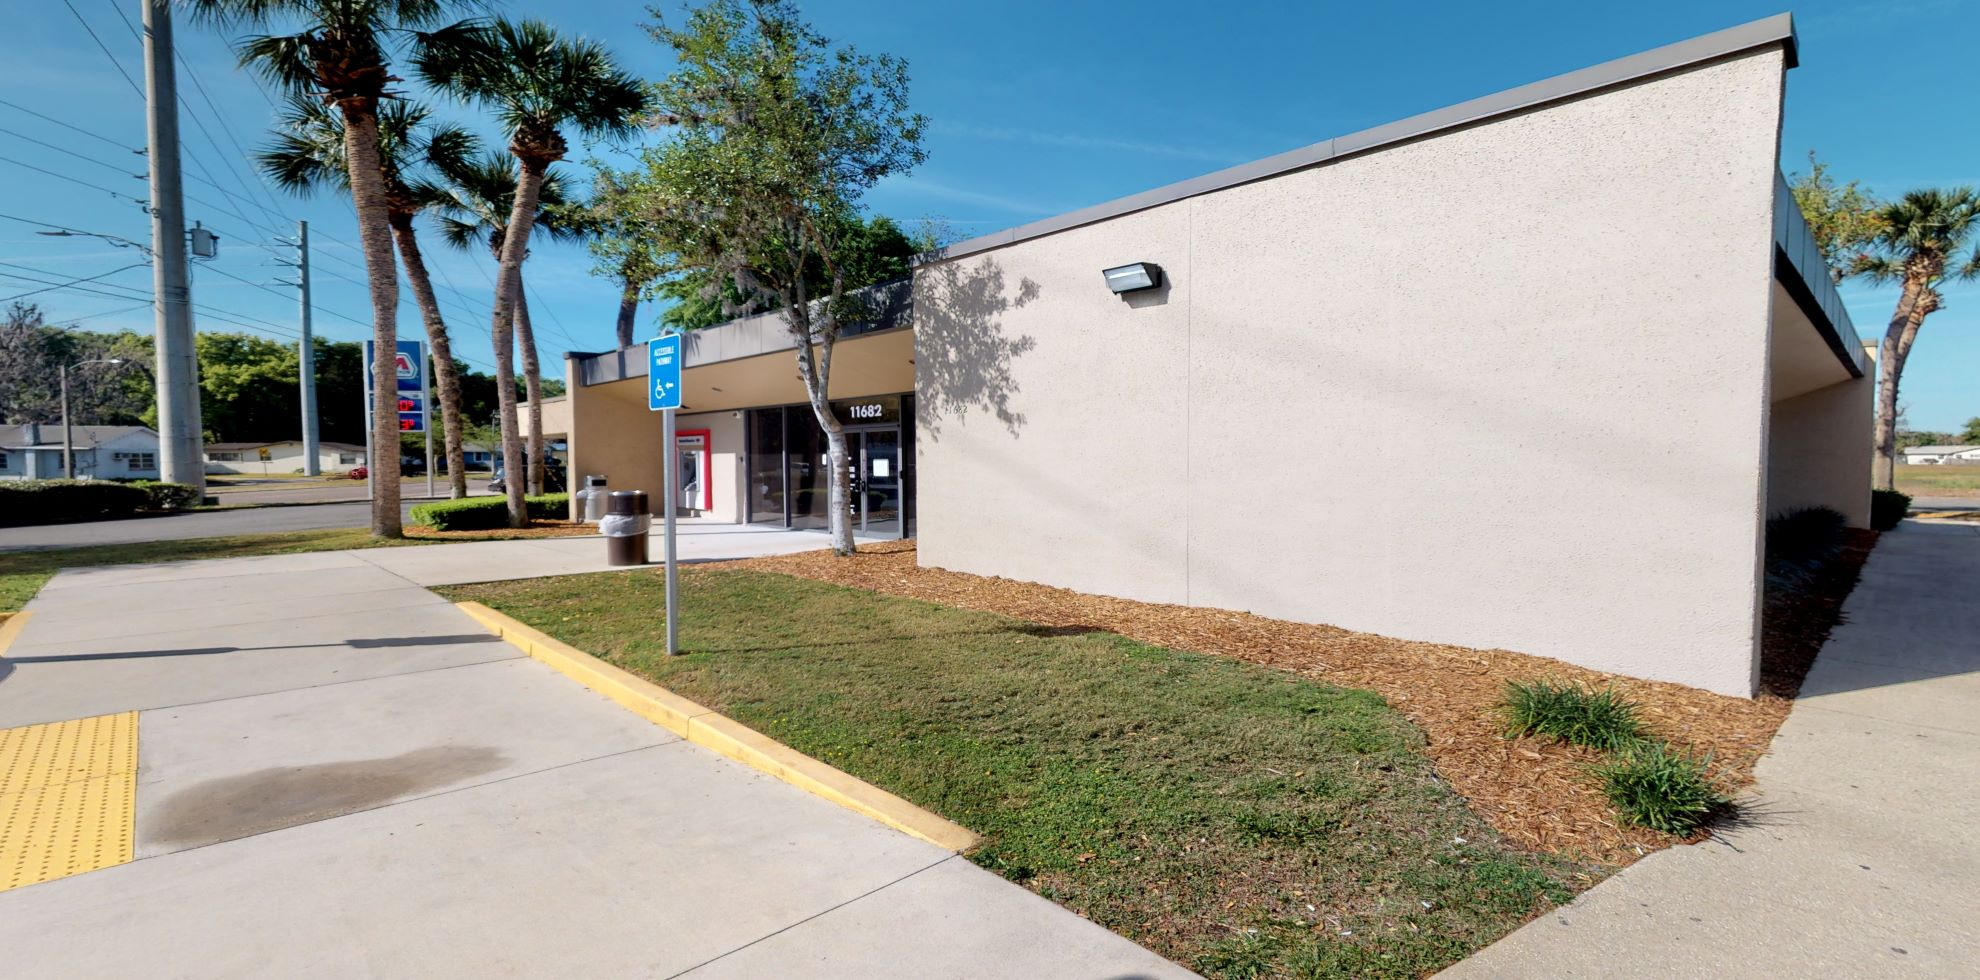 Bank of America financial center with drive-thru ATM   11682 N Williams St, Dunnellon, FL 34432